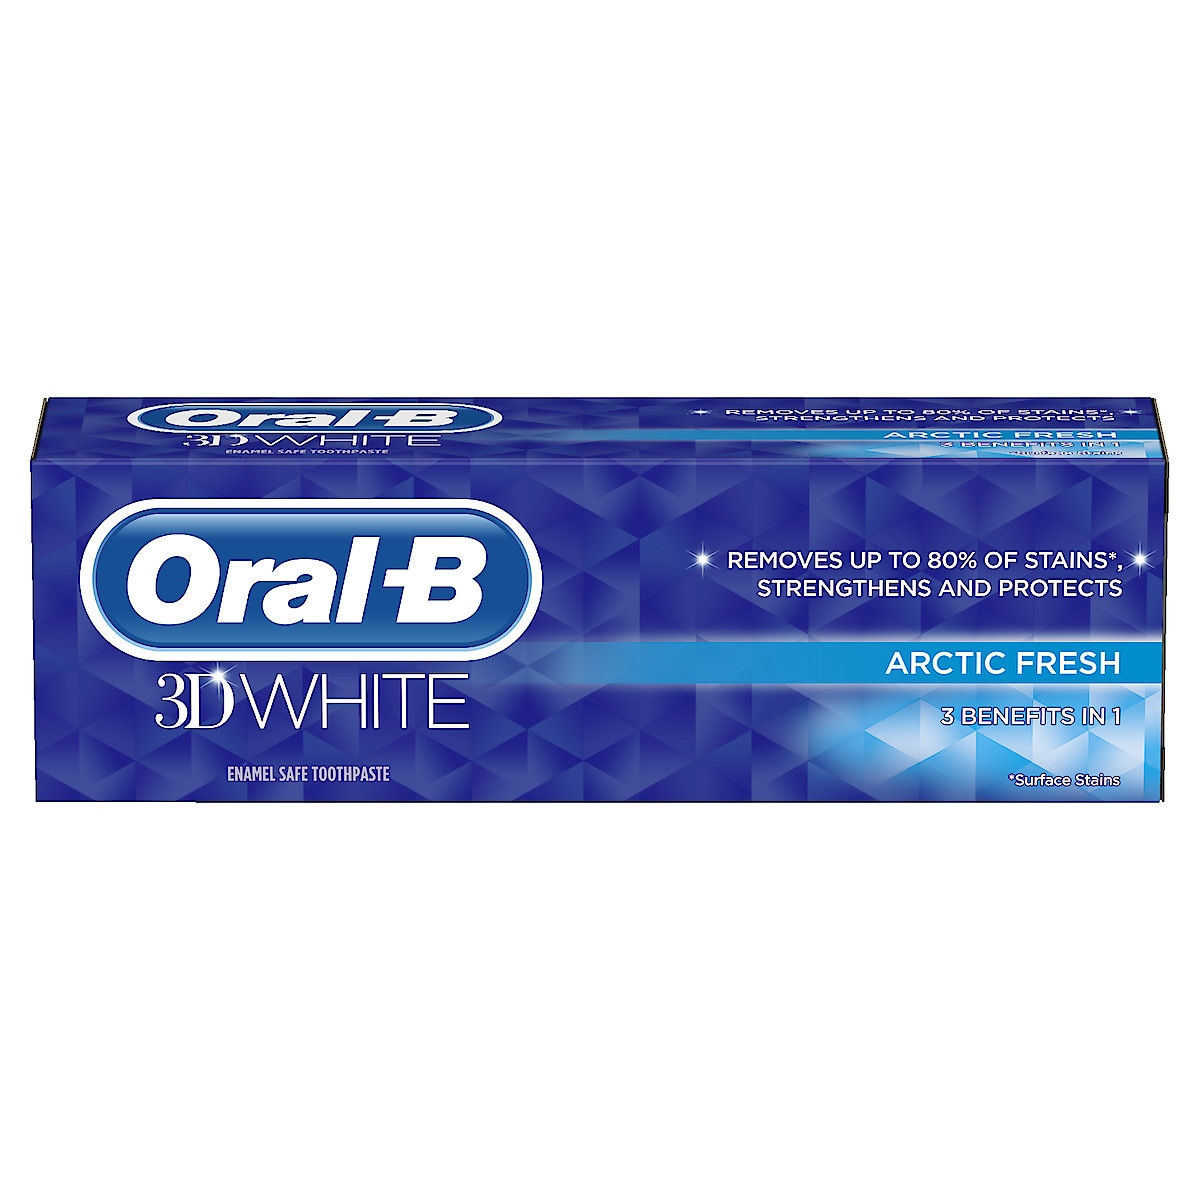 Oral-B 3D White Arctic Fresh Toothpaste